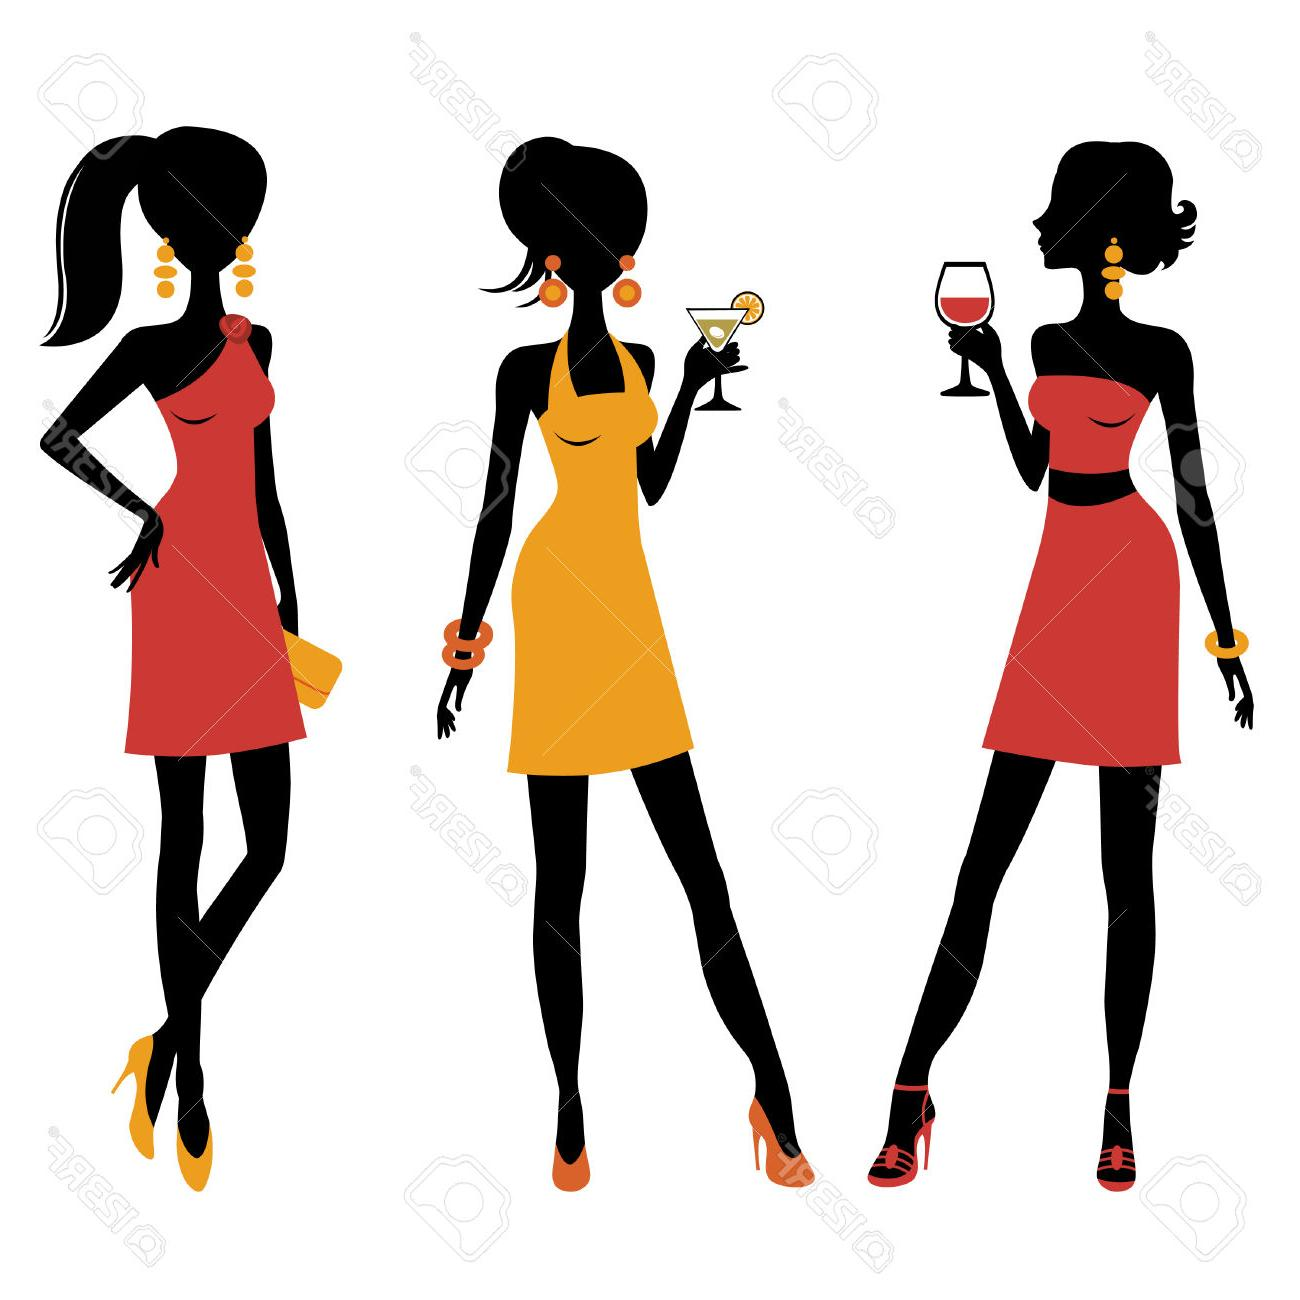 Cocktails clipart group. Of girls free download